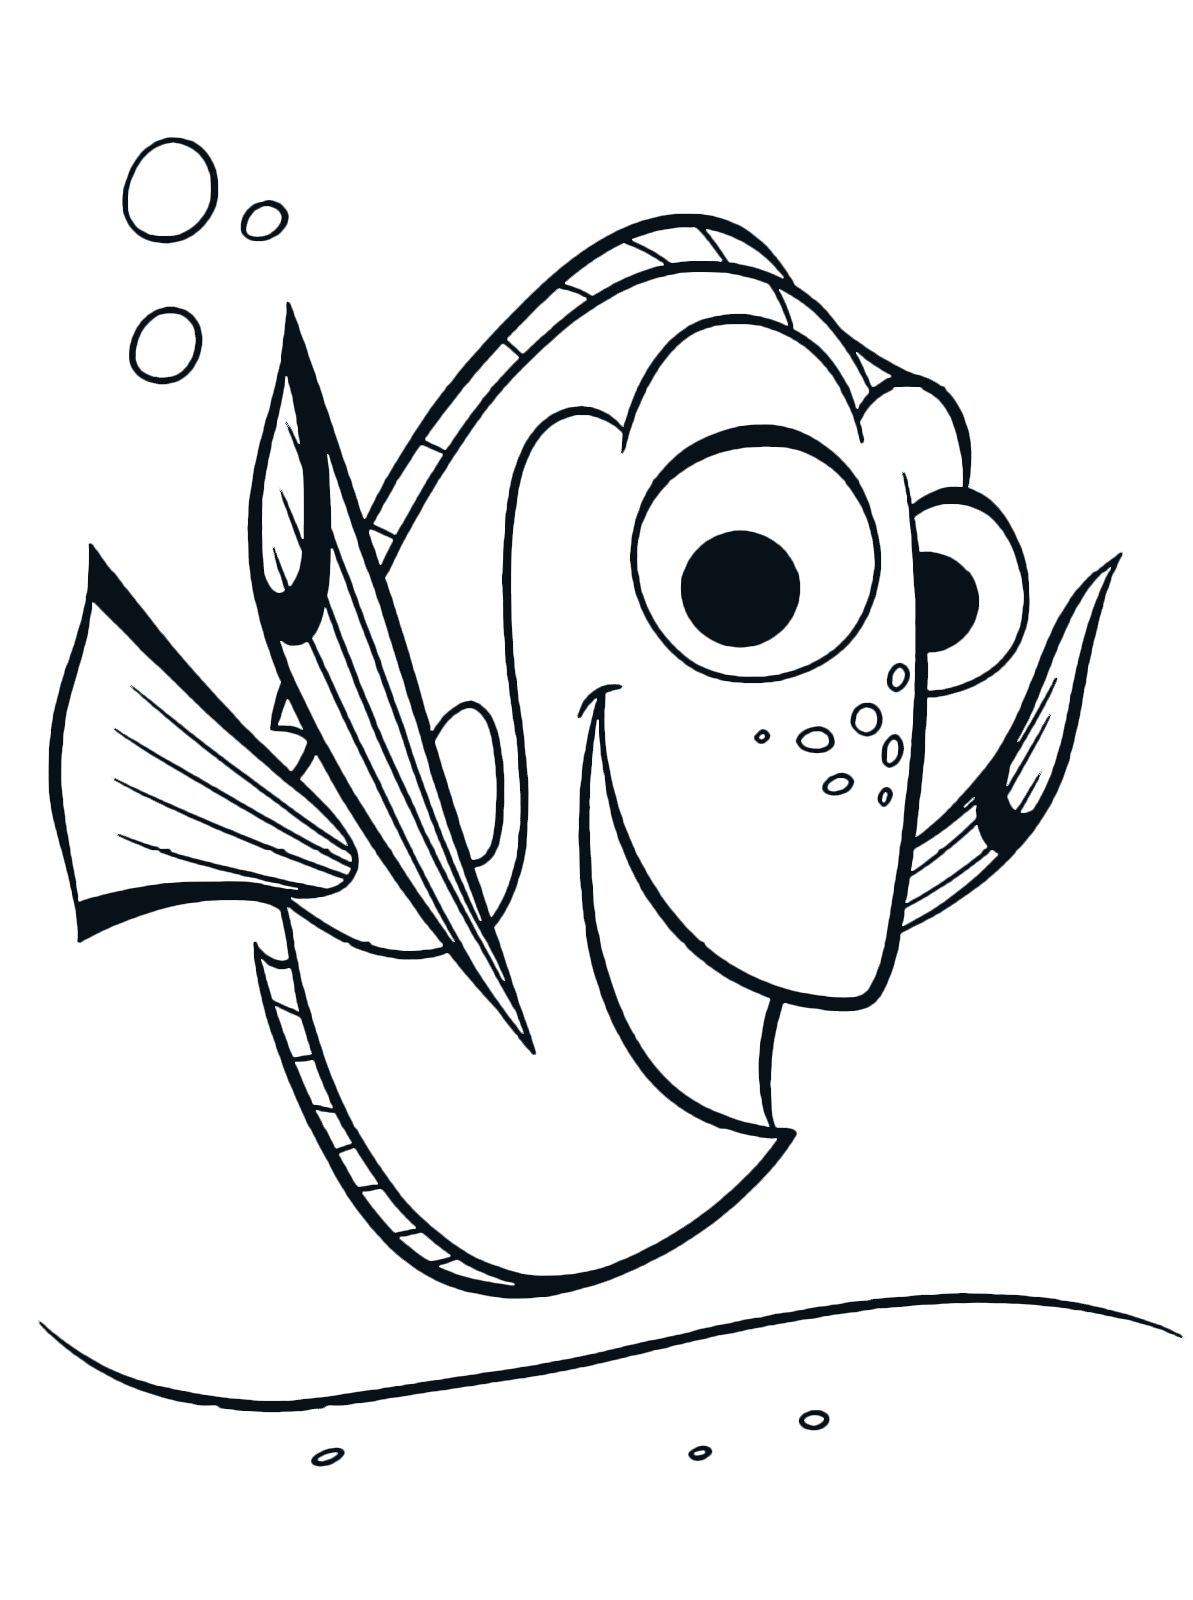 quot Finding Dory quot coloring pages